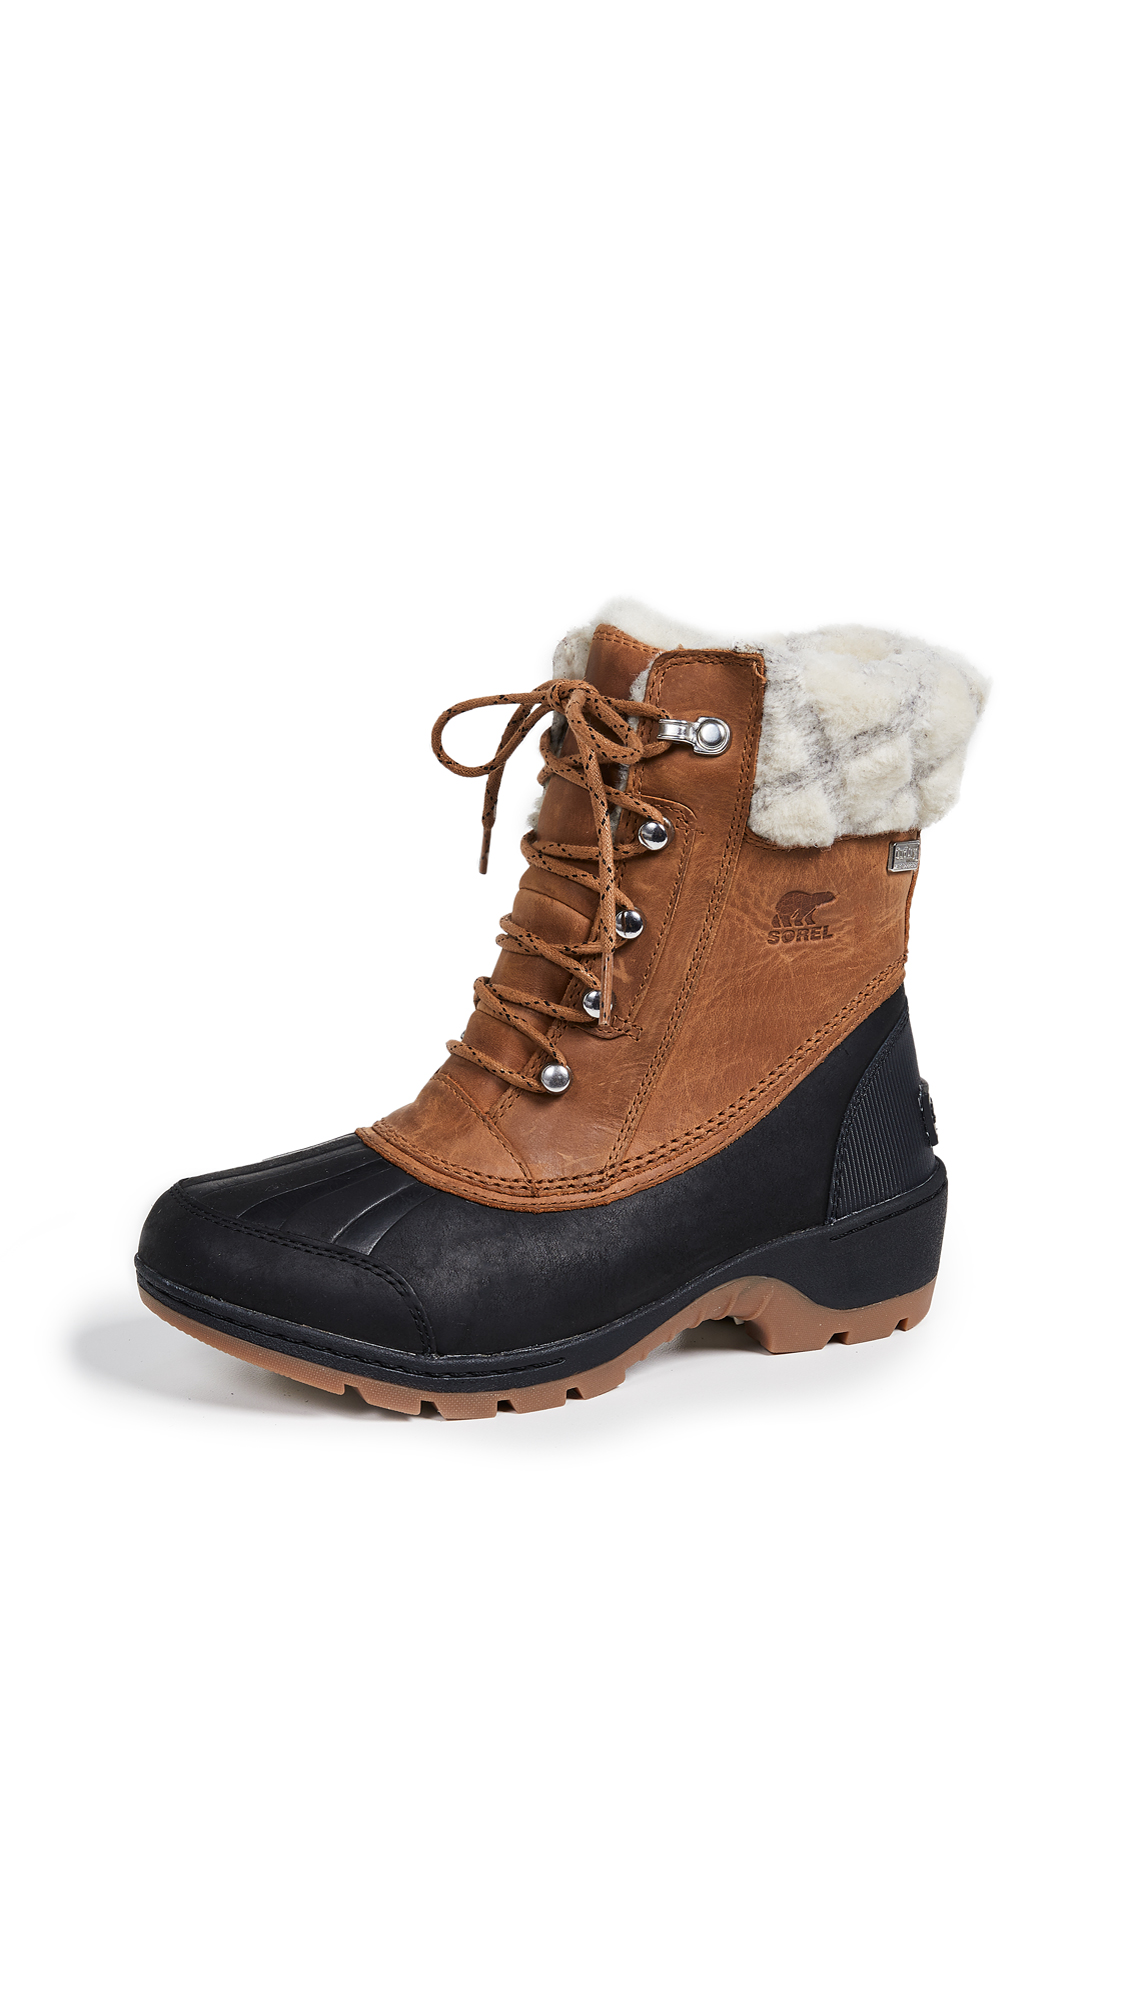 Sorel Whistler Mid Boots - Camel Brown/Black